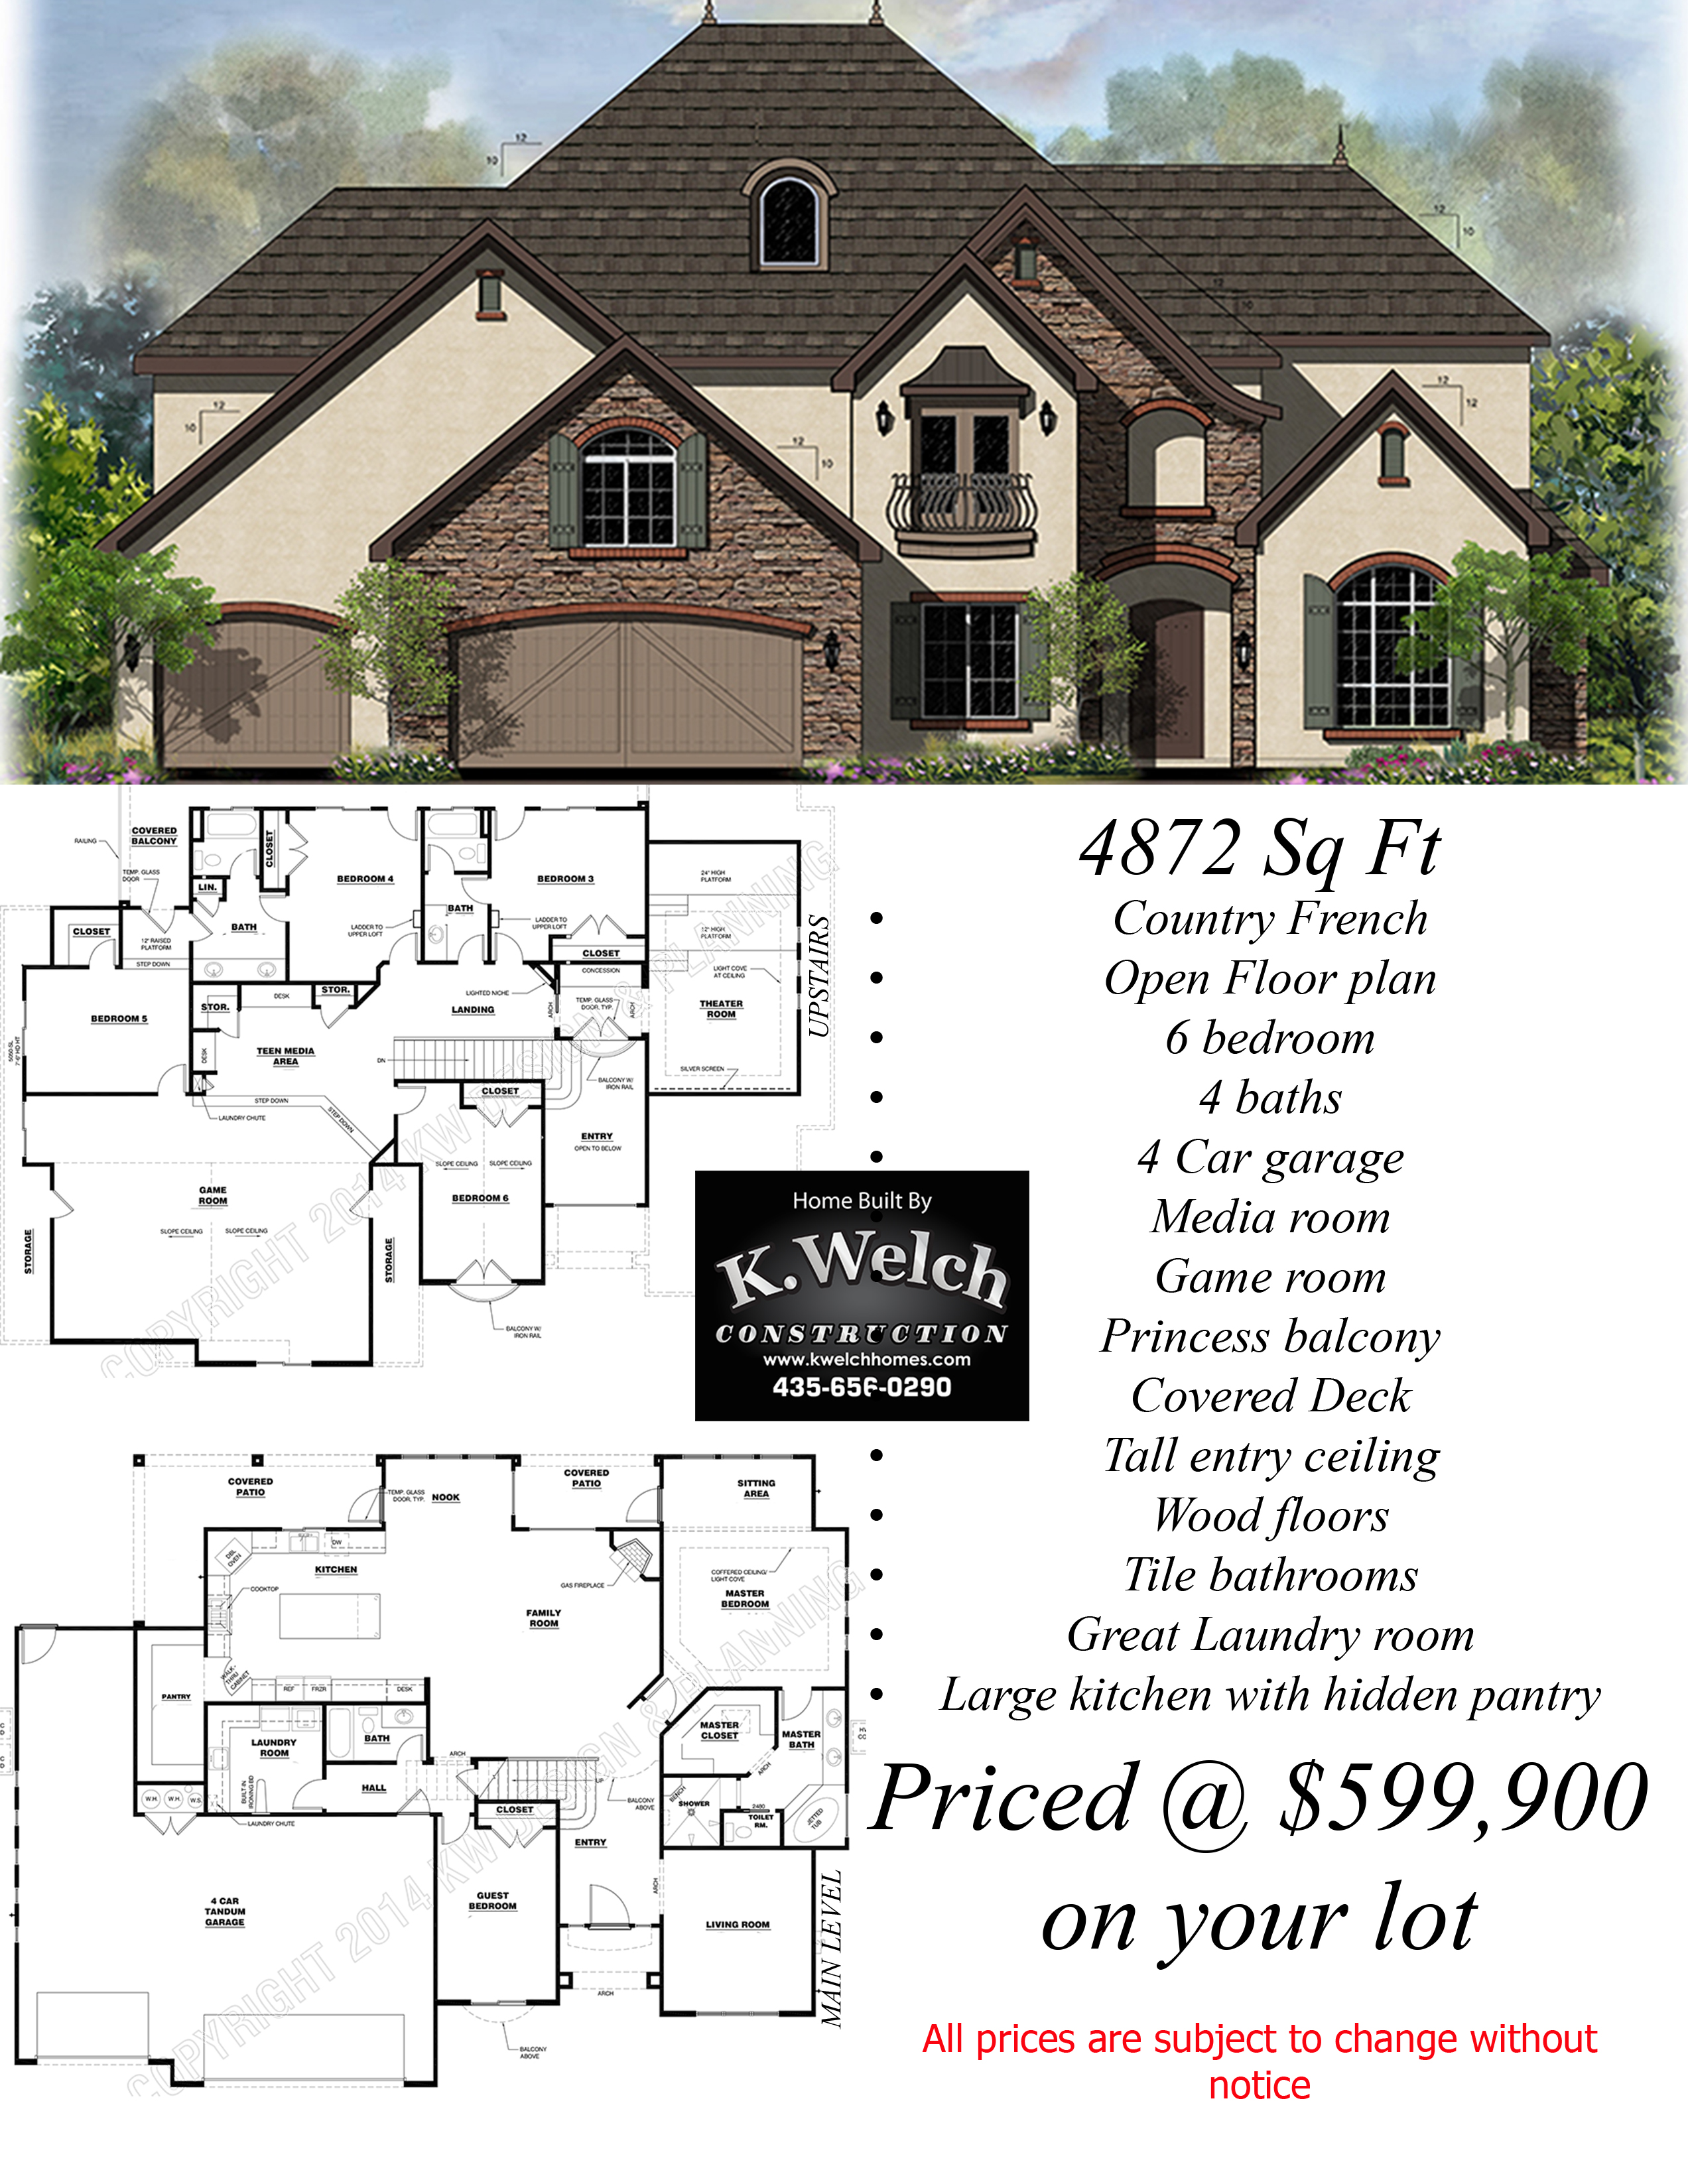 Above 4500 Sq Ft K Welch Homes